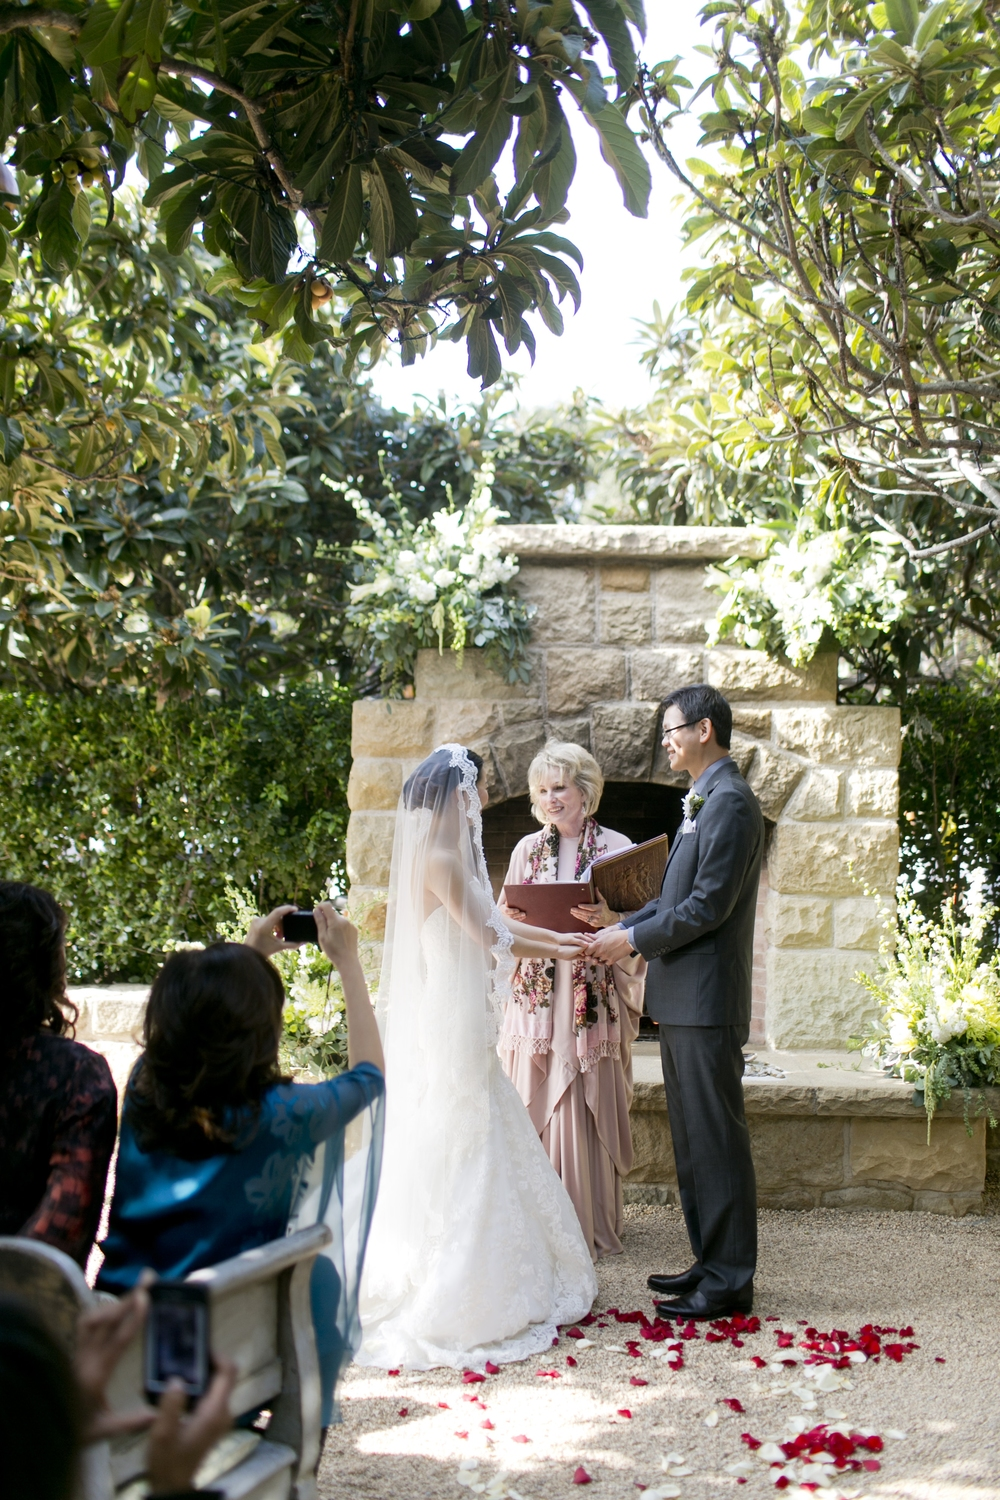 Santa Barbara Wedding Officiant Miriam Lindbeck | Non-Denominational Minister Serving Southern California